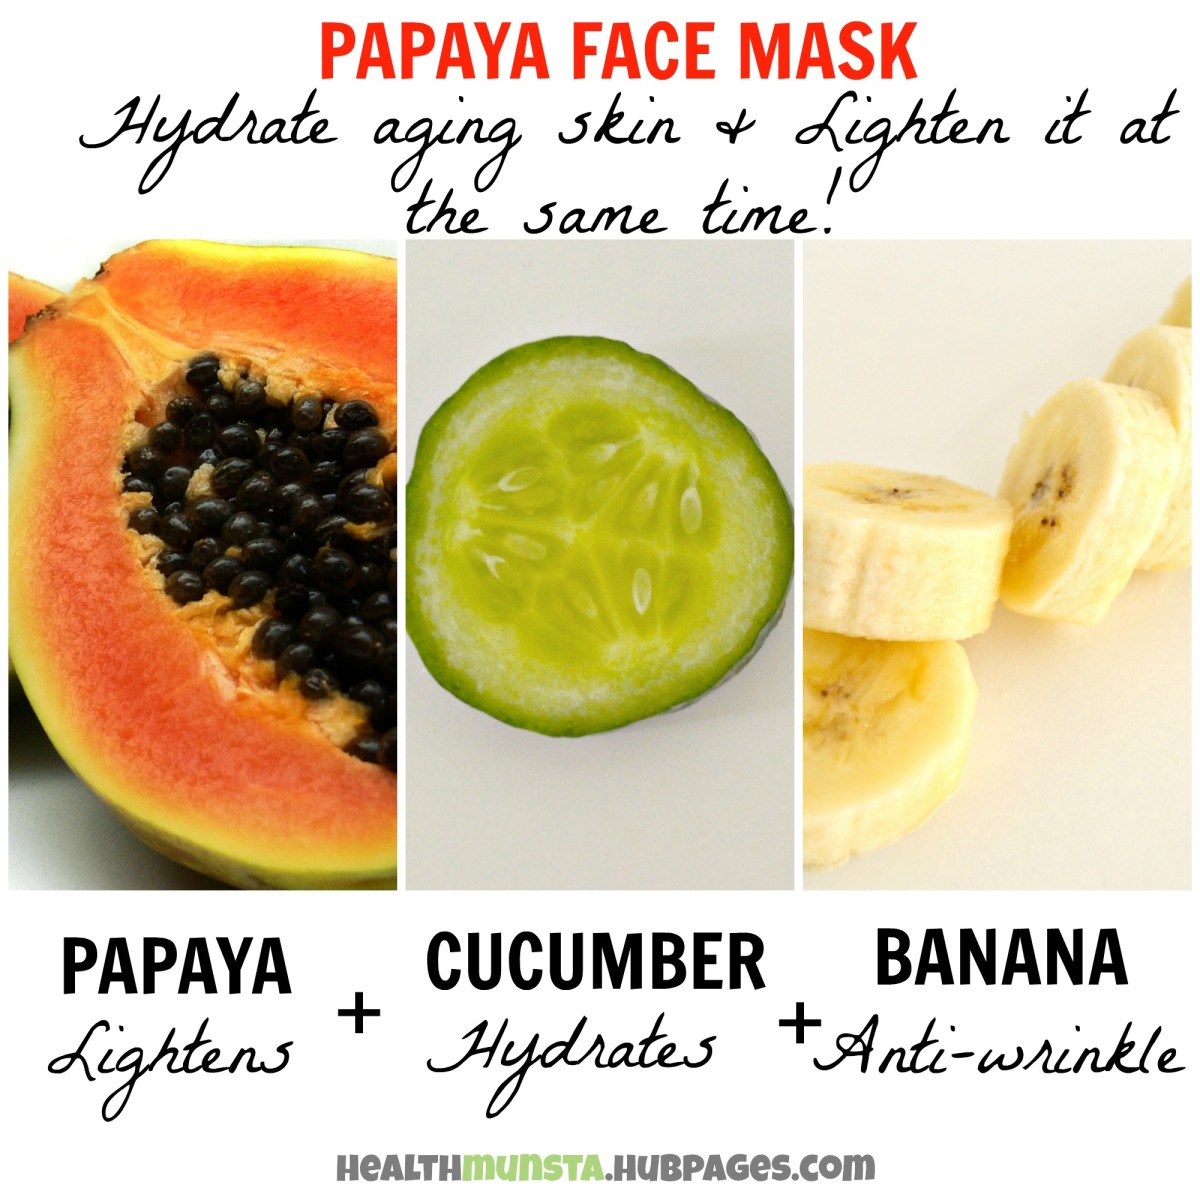 Time to get rid of those pesky premature wrinkles and dark spots too, with this unique papaya face mask formulated to plump up your skin and reduce pigmentation!